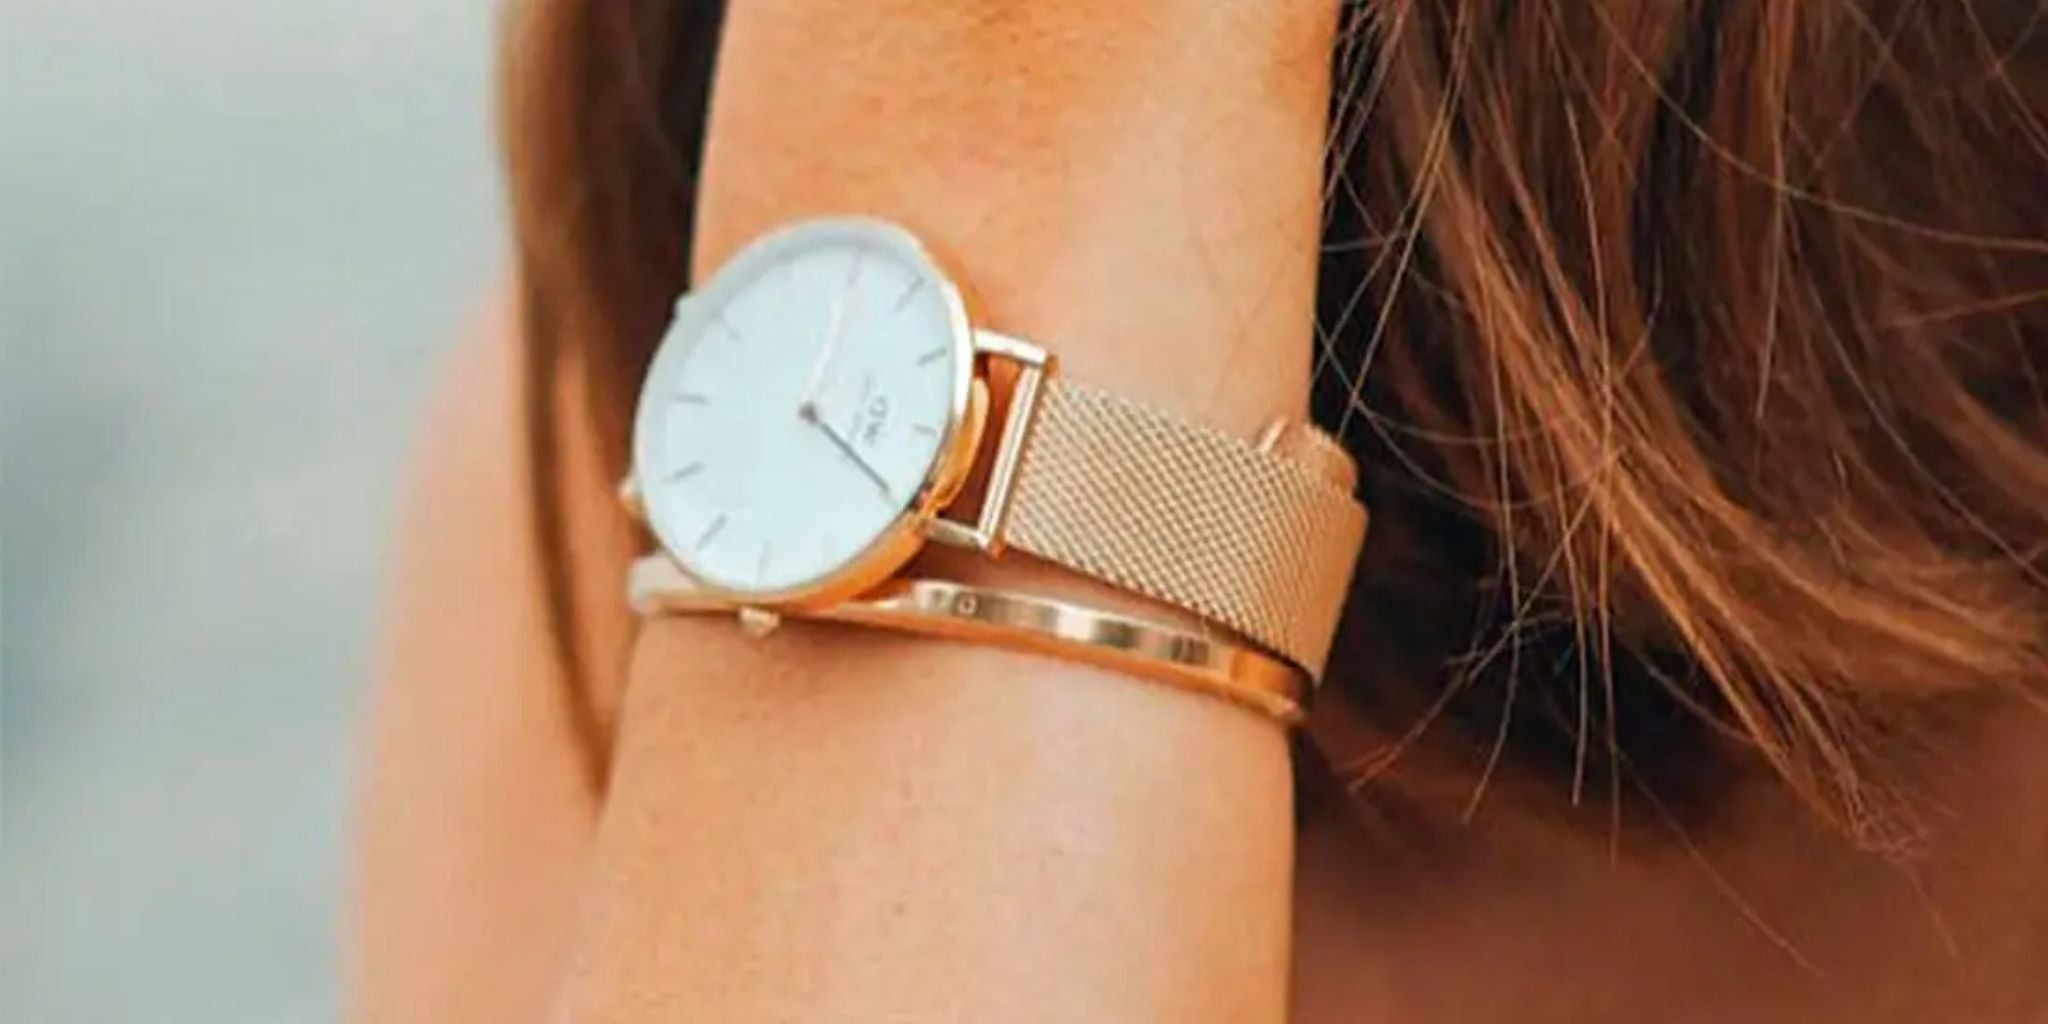 Look for the trend in ladies watches